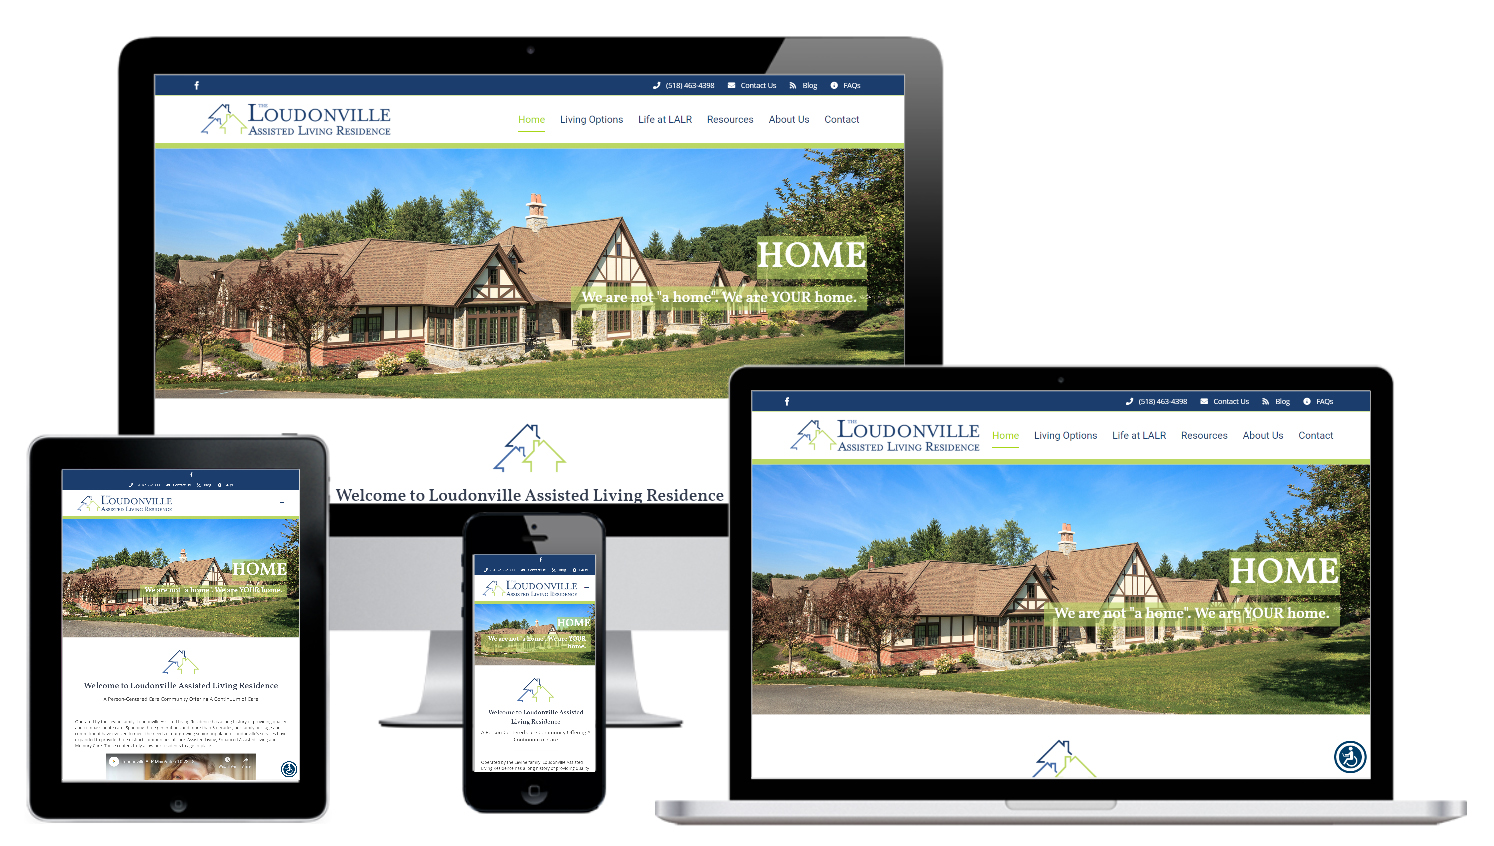 ssisted Living Website Design Albany, NY